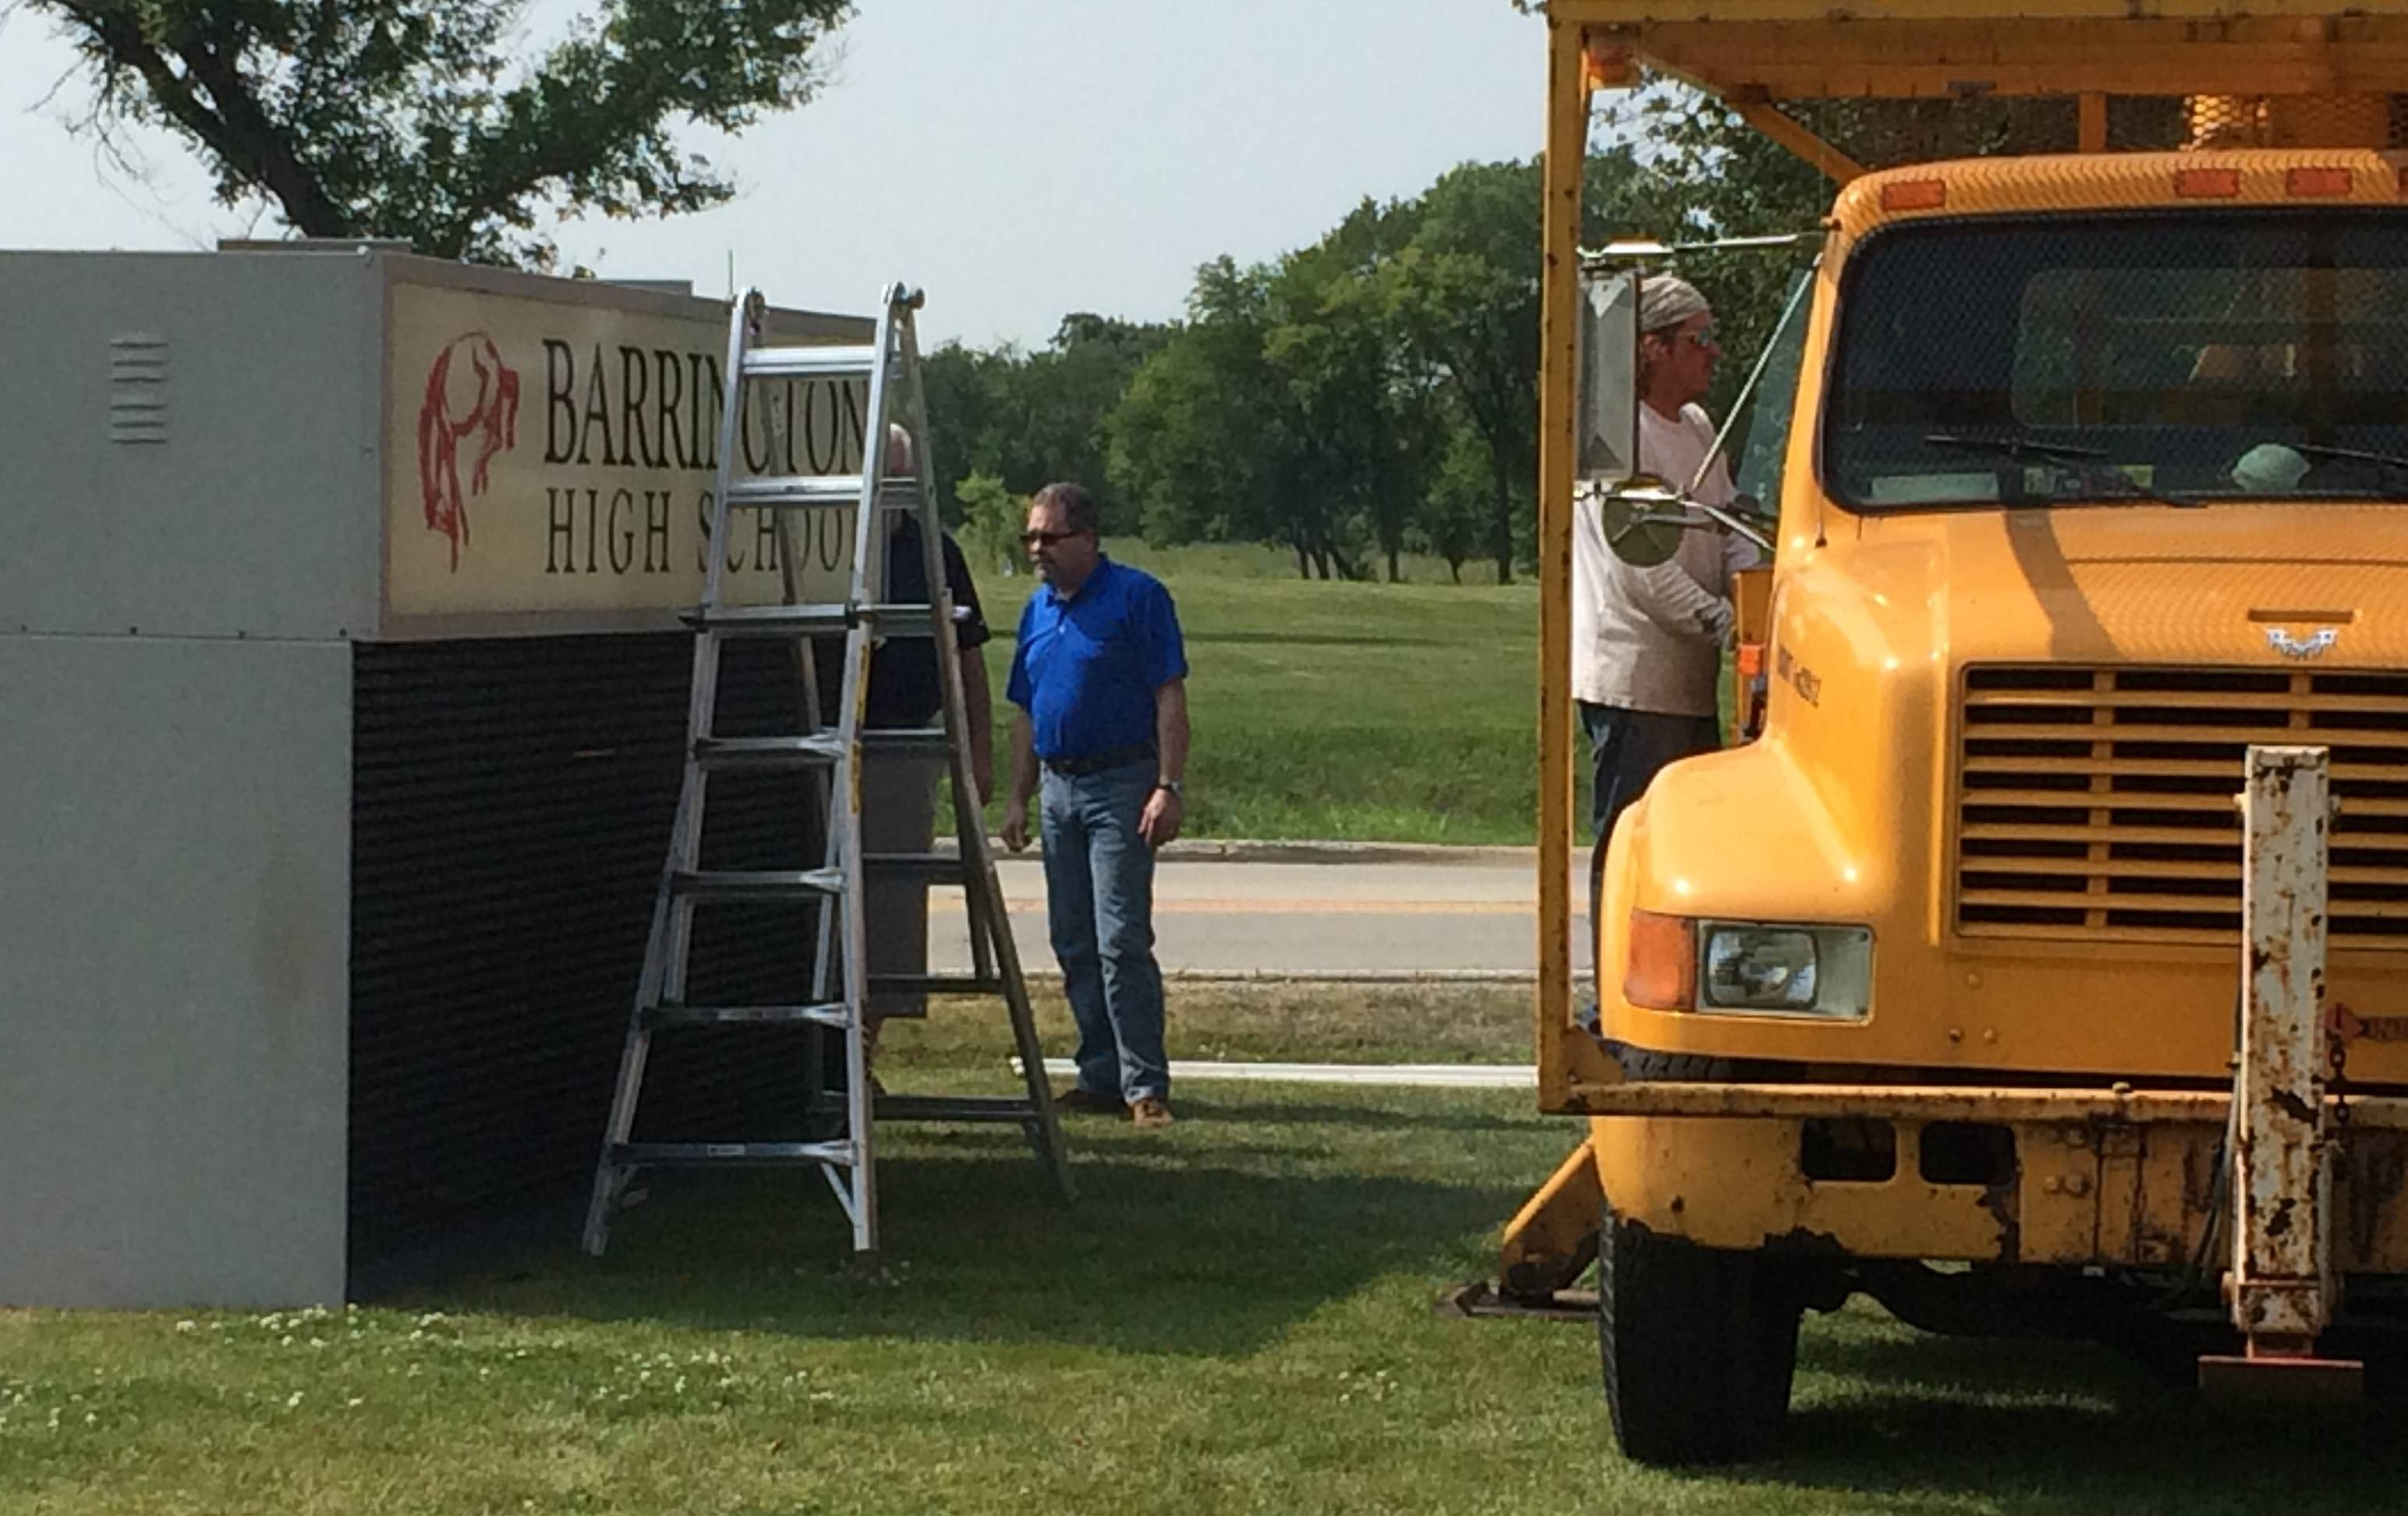 District workers prepare to replace the exterior sign at Barrington High School.